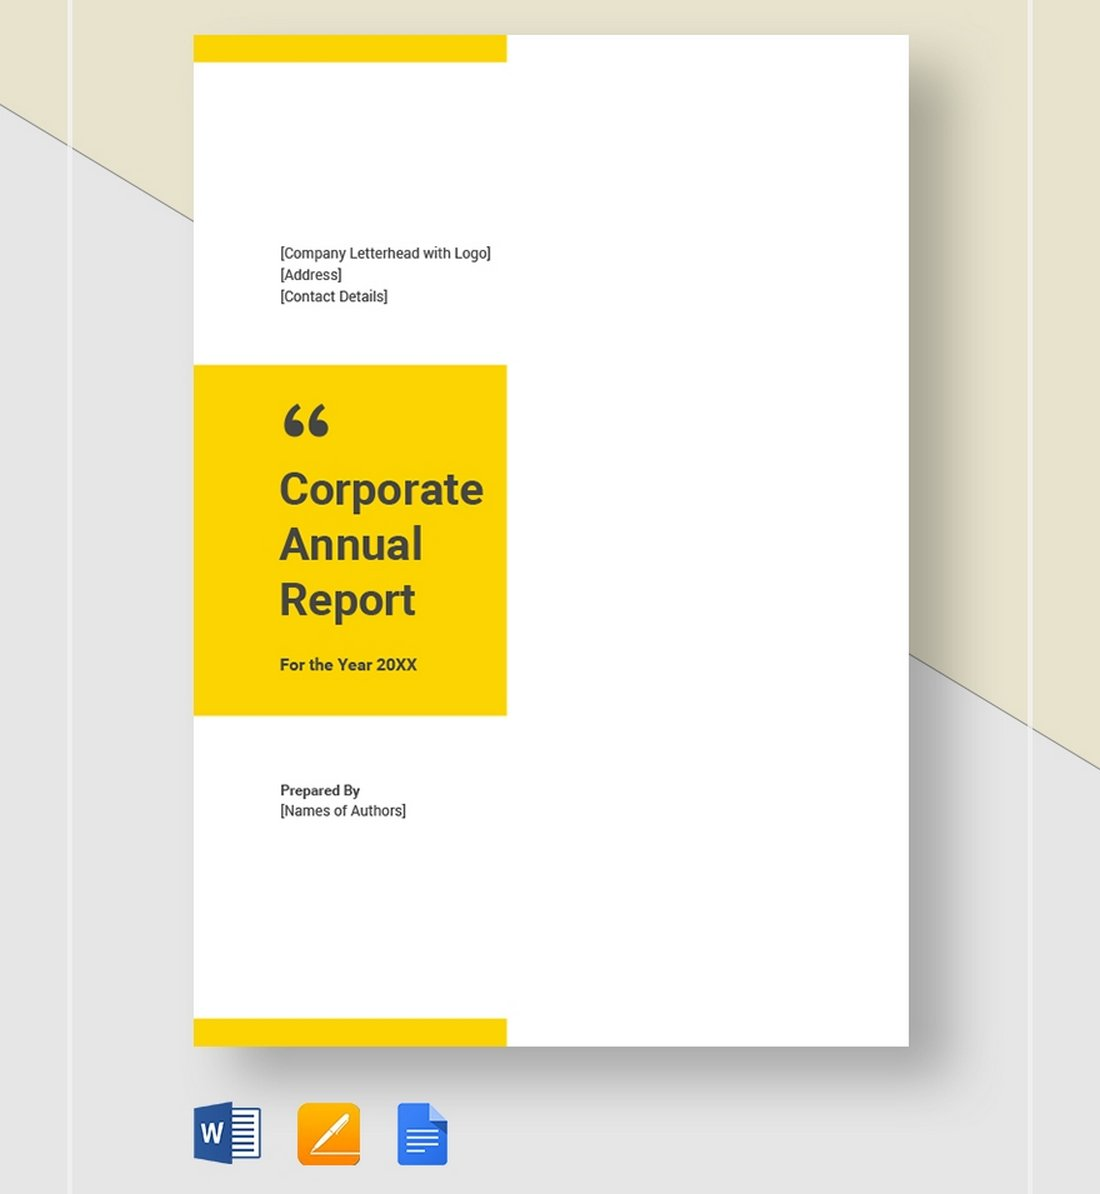 Free-Modern-Corporate-Annual-Report-Template 30+ Annual Report Templates (Word & InDesign) 2020 design tips  Inspiration|annual|report|template